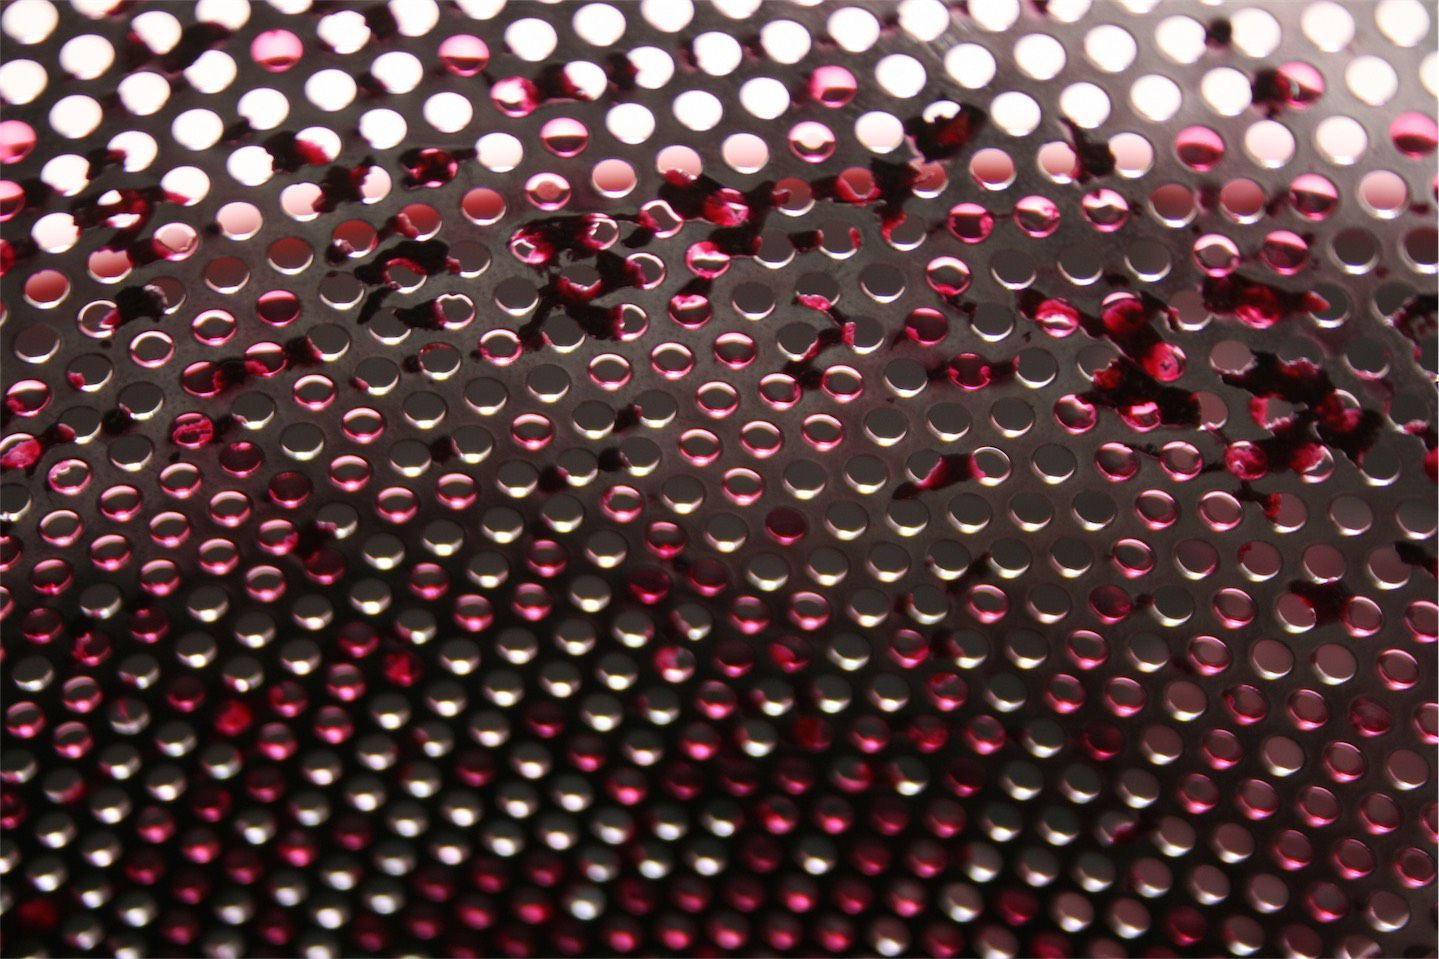 Dots Of Red Wine 1424